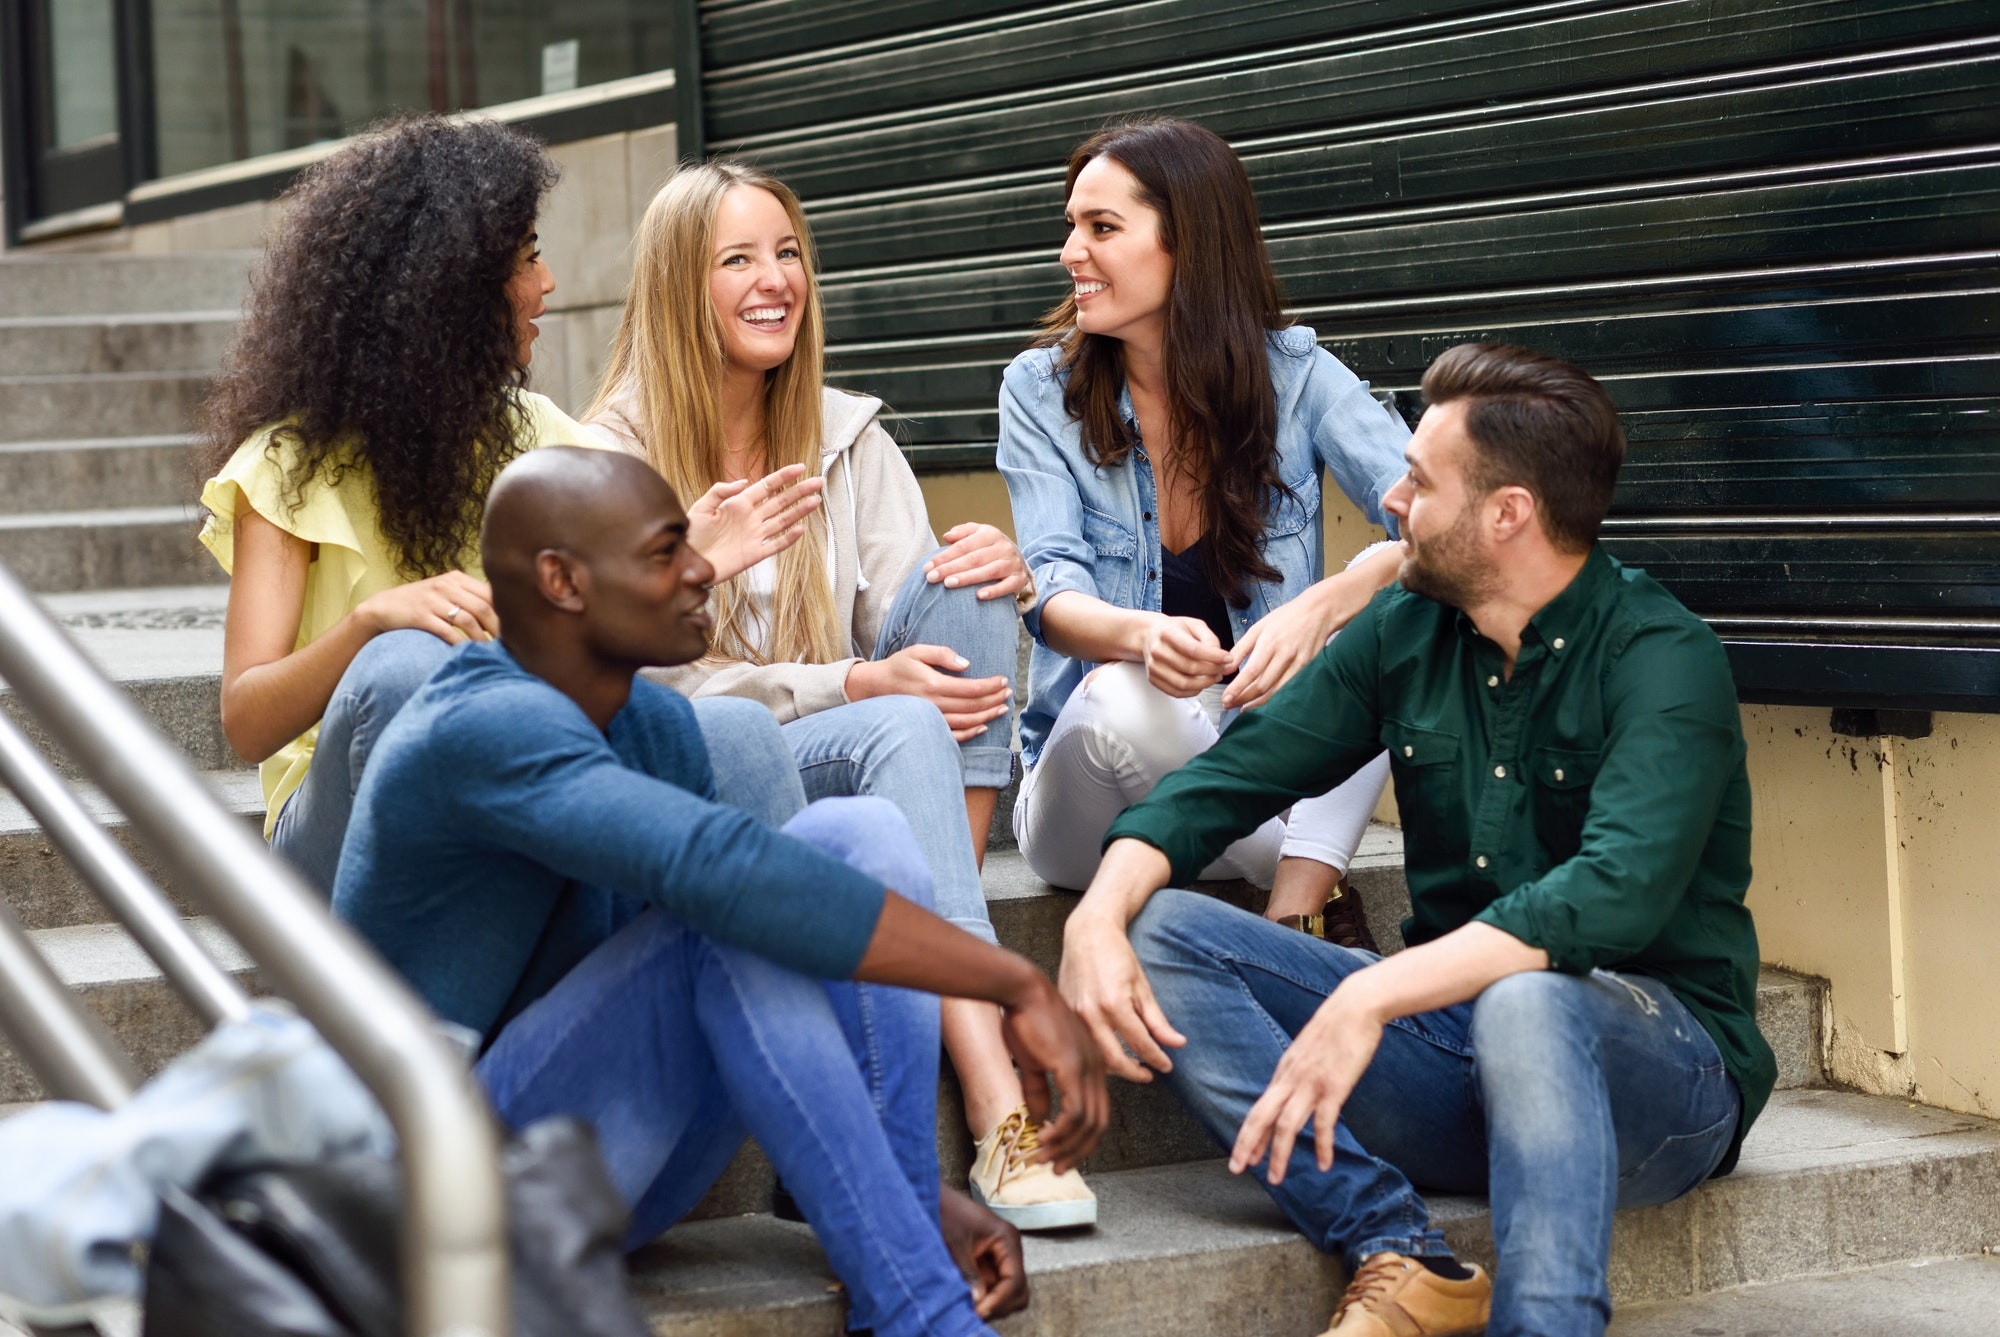 message testing: Group of friends having fun together outdoors